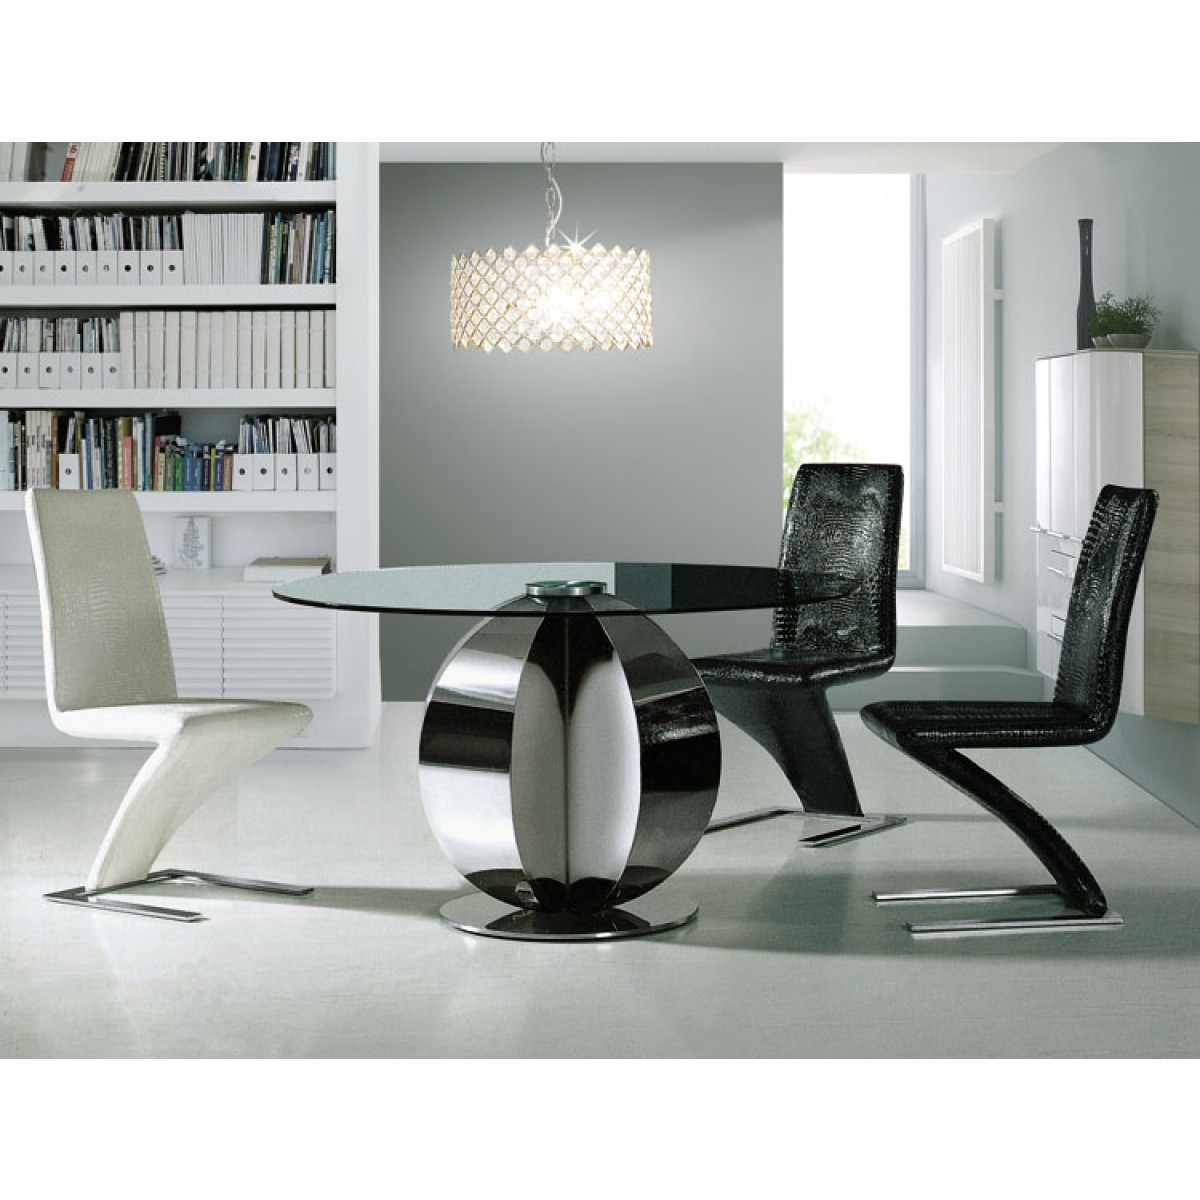 Superbe table design giro pop - Table salle a manger ronde design ...